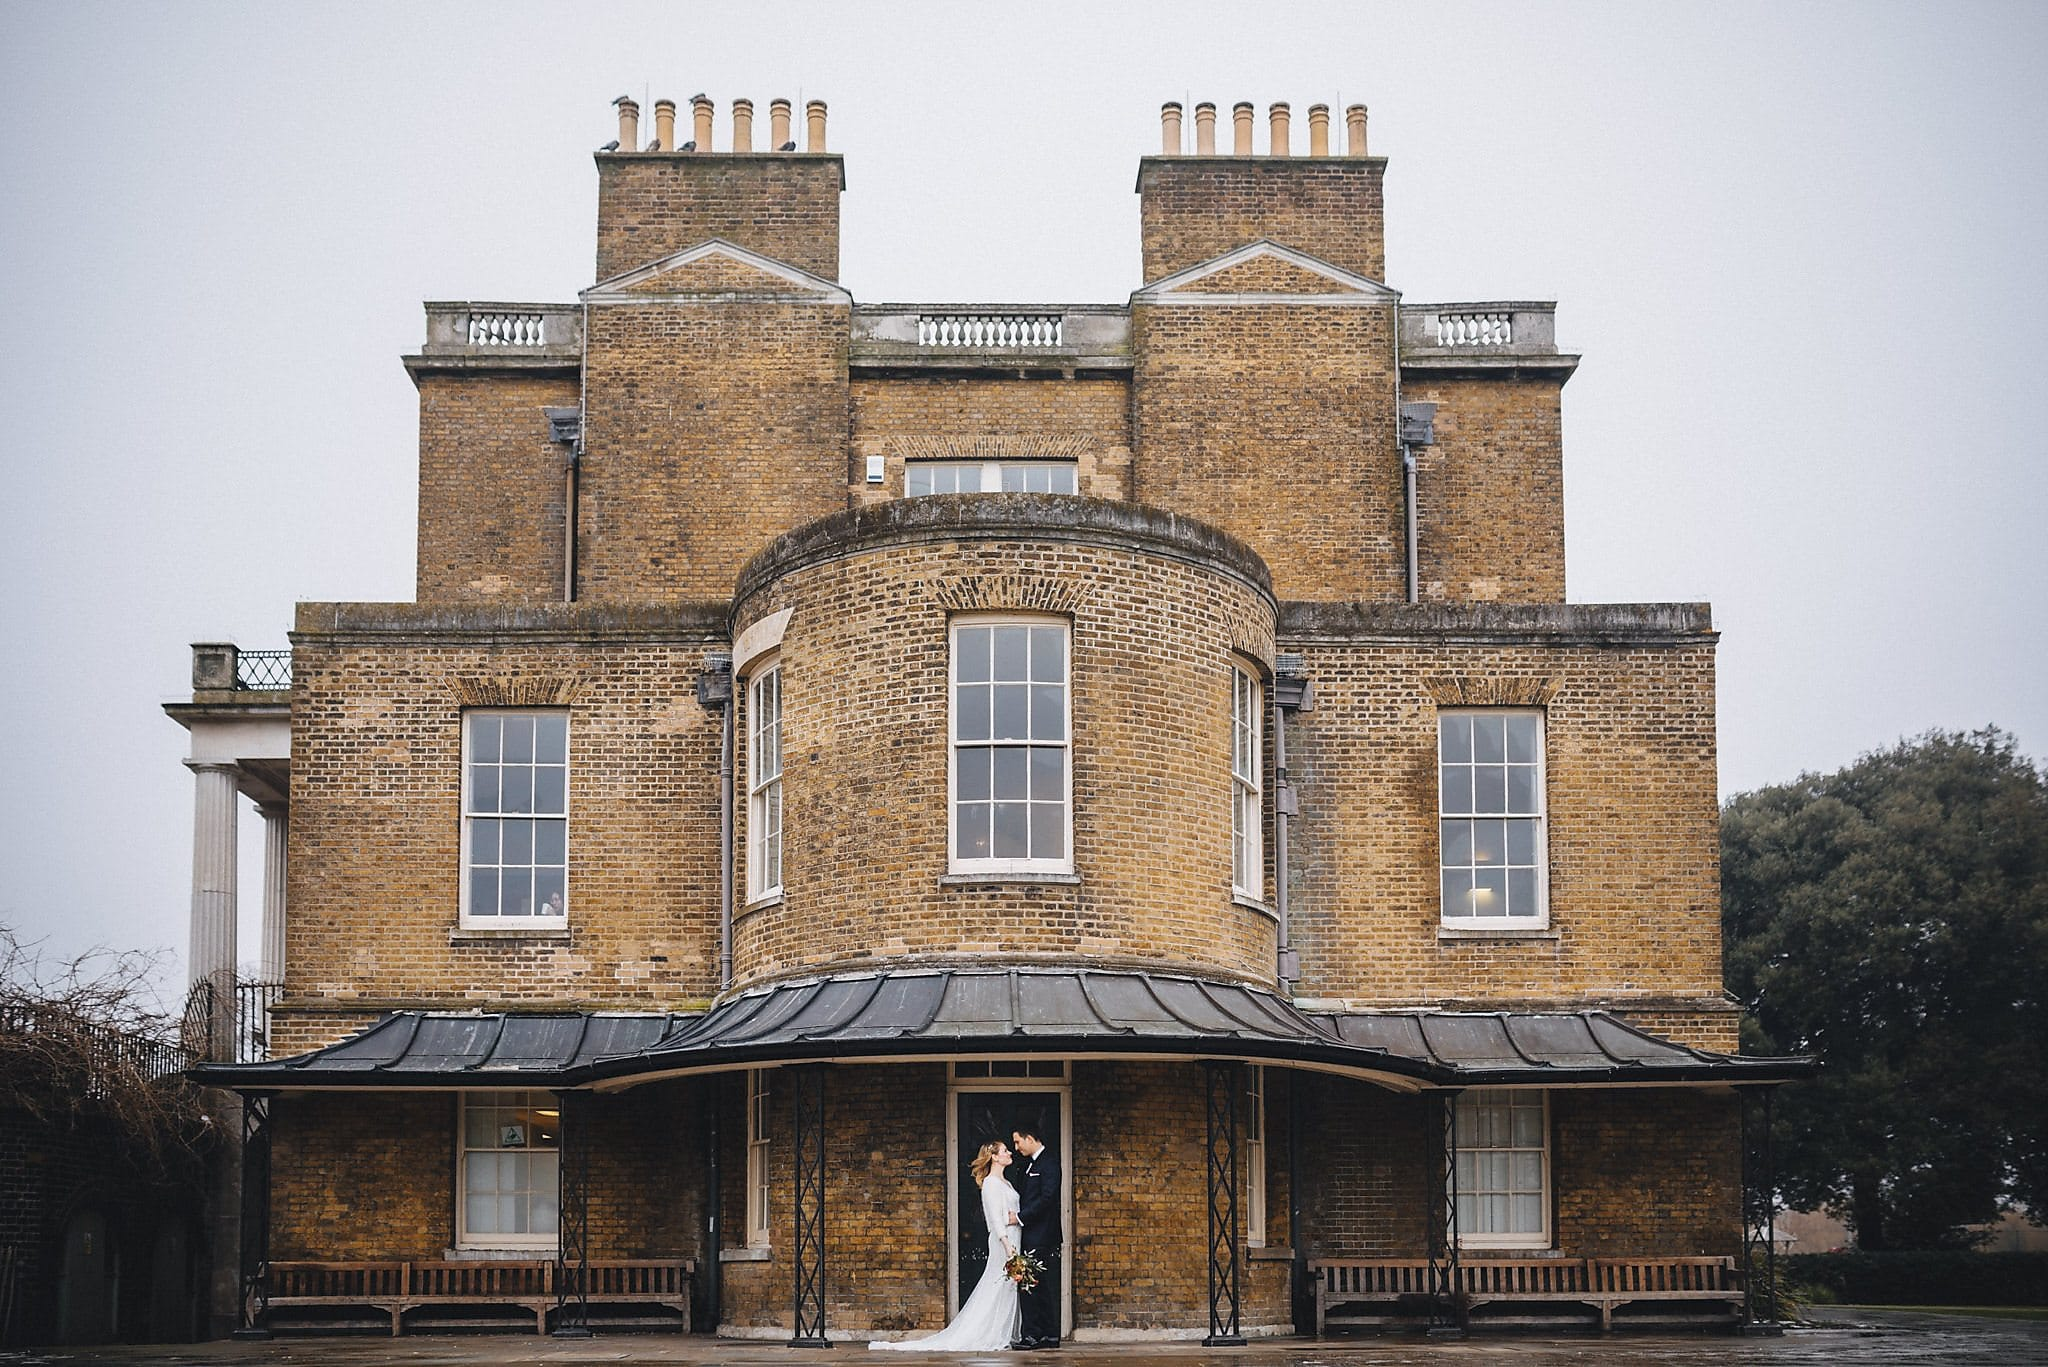 Bride and groom standing in front of Clissold House for their wedding